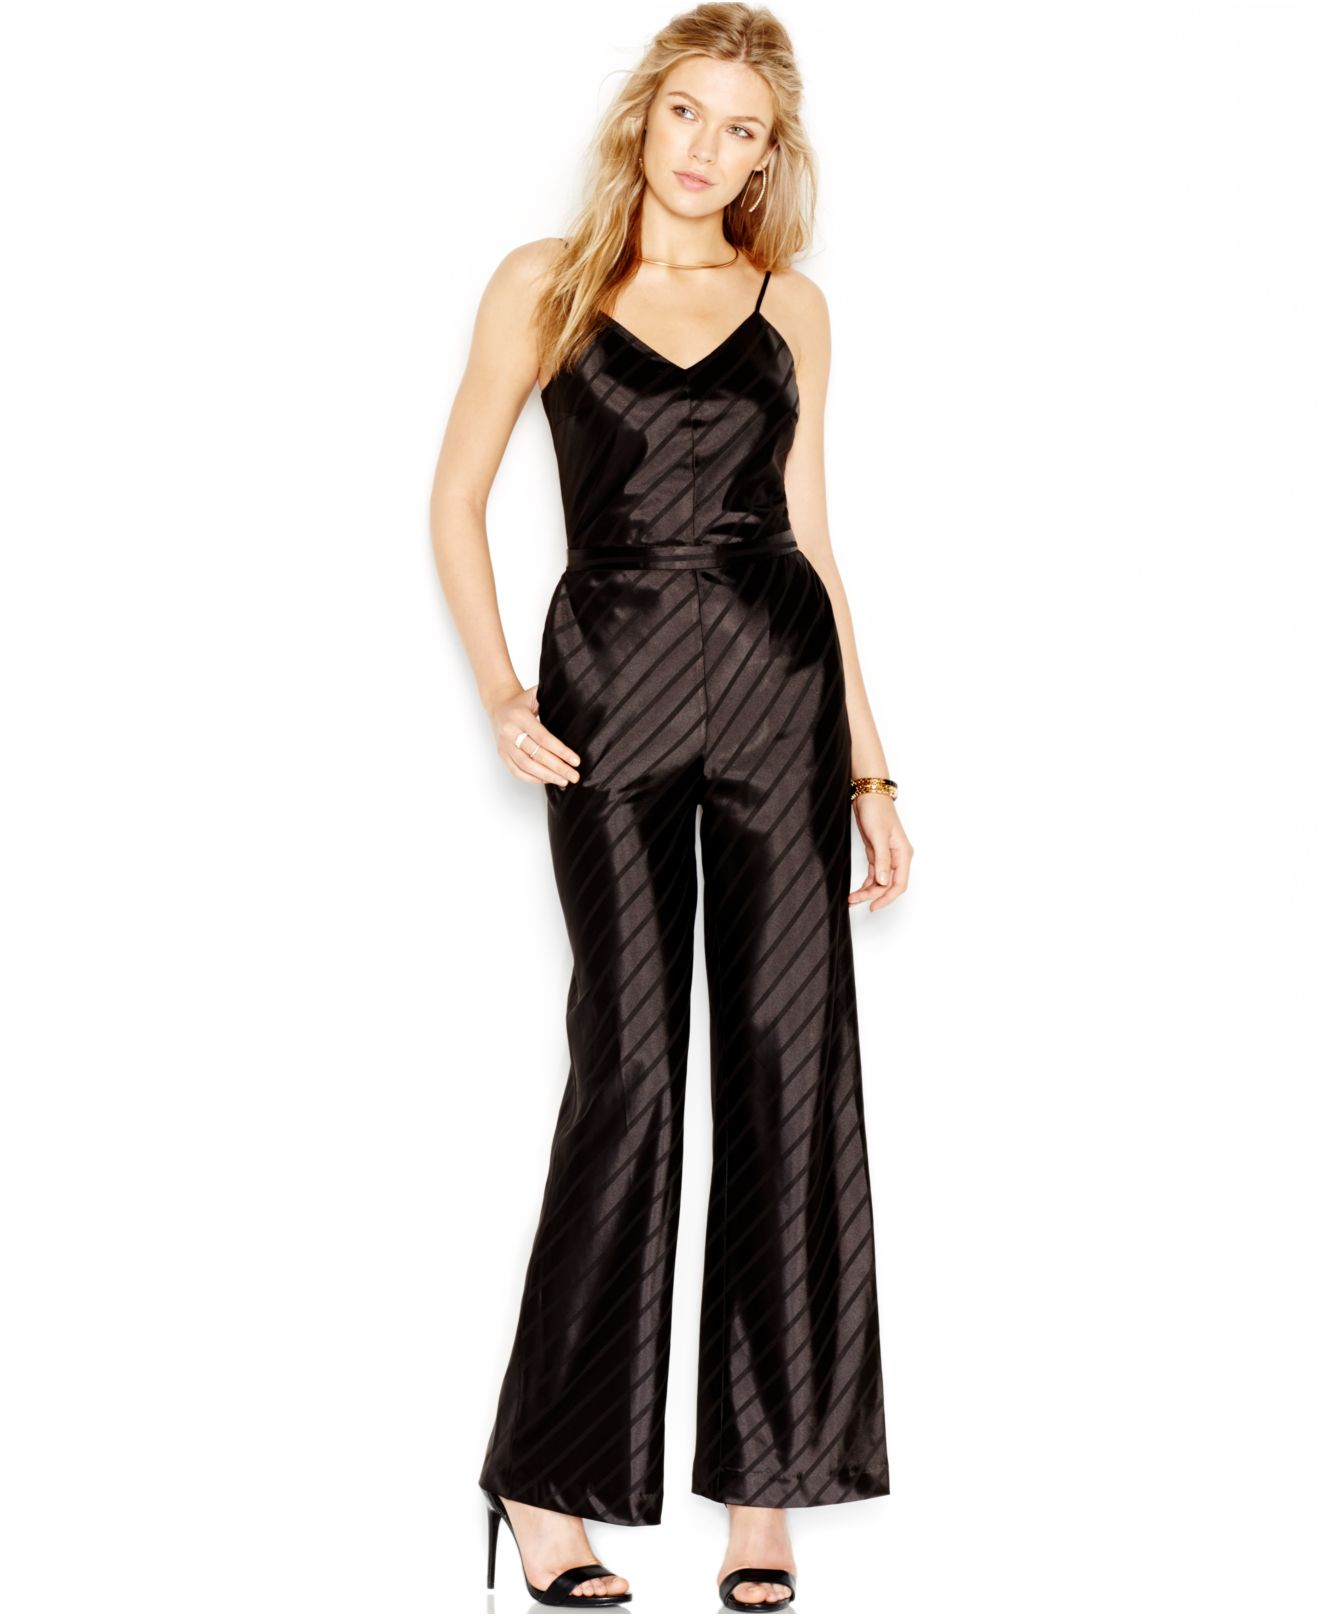 Lyst - Guess Satin Striped Jumpsuit in Black